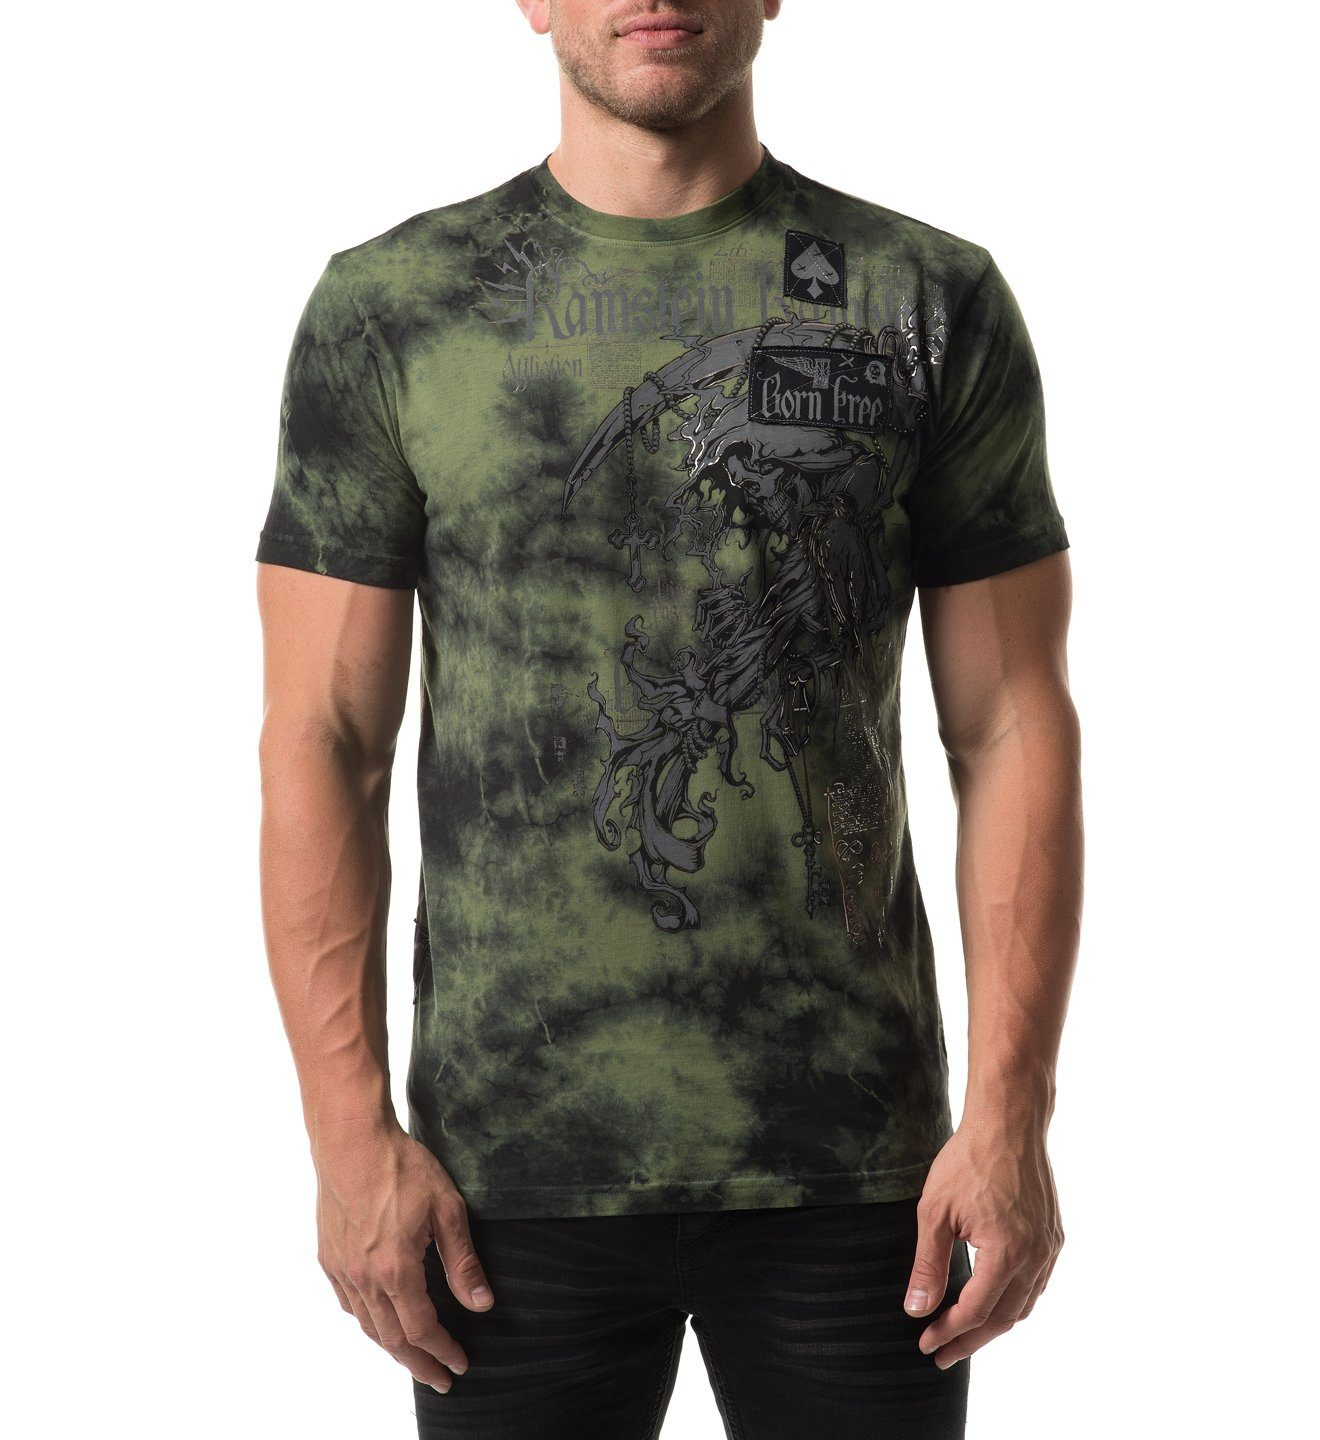 Range - Mens Short Sleeve Tees - Affliction Clothing